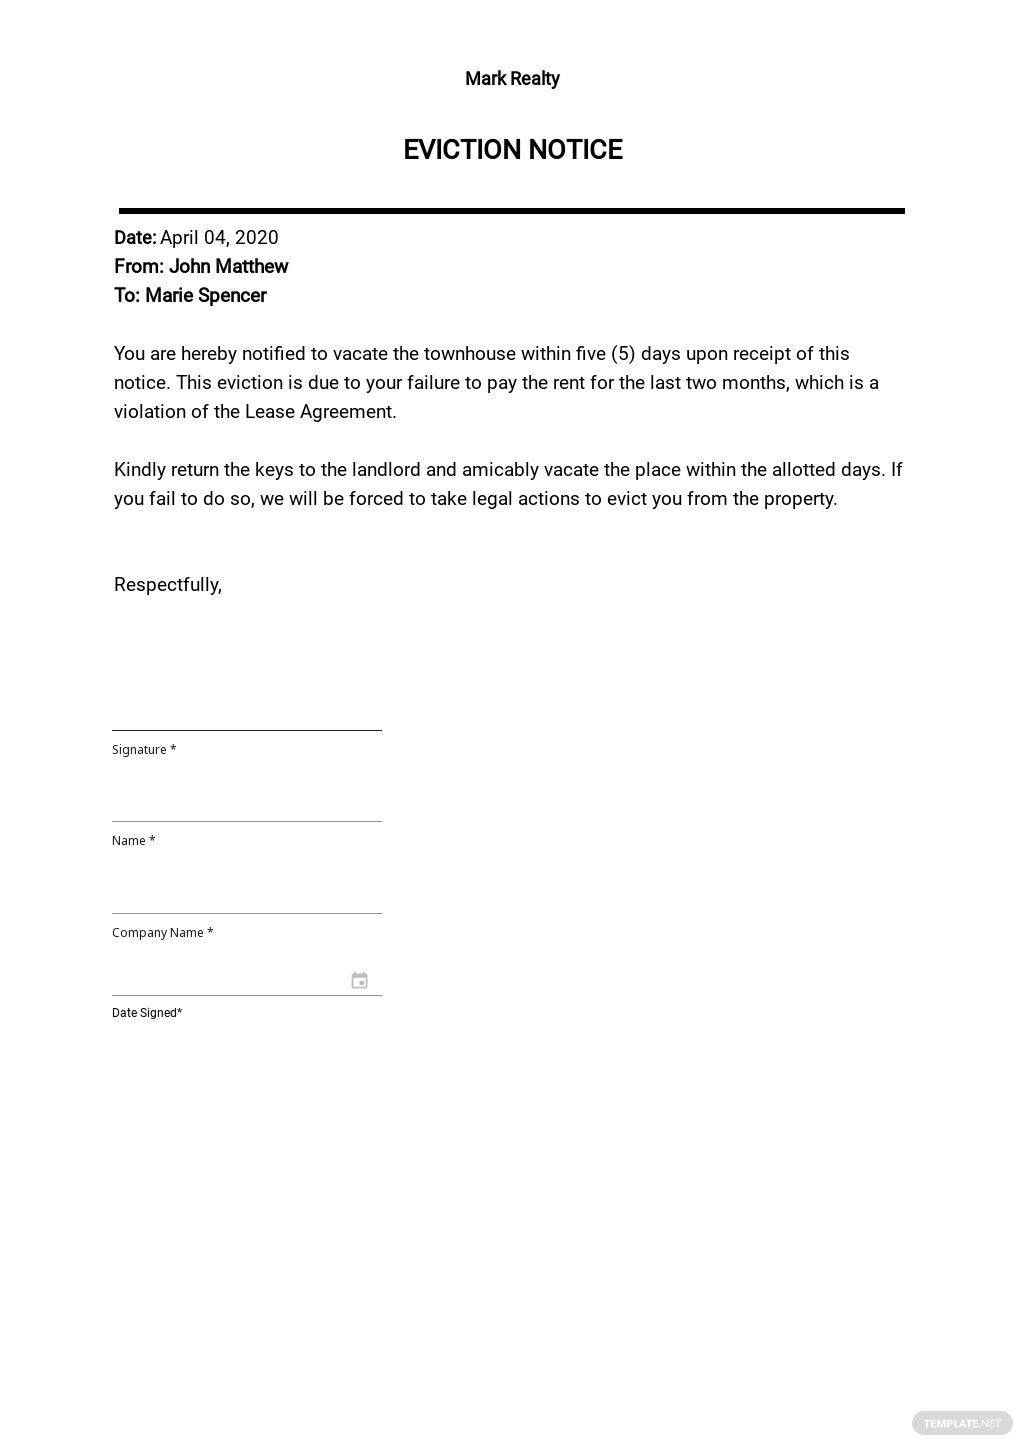 Free 5 Day Eviction Notice Template.jpe